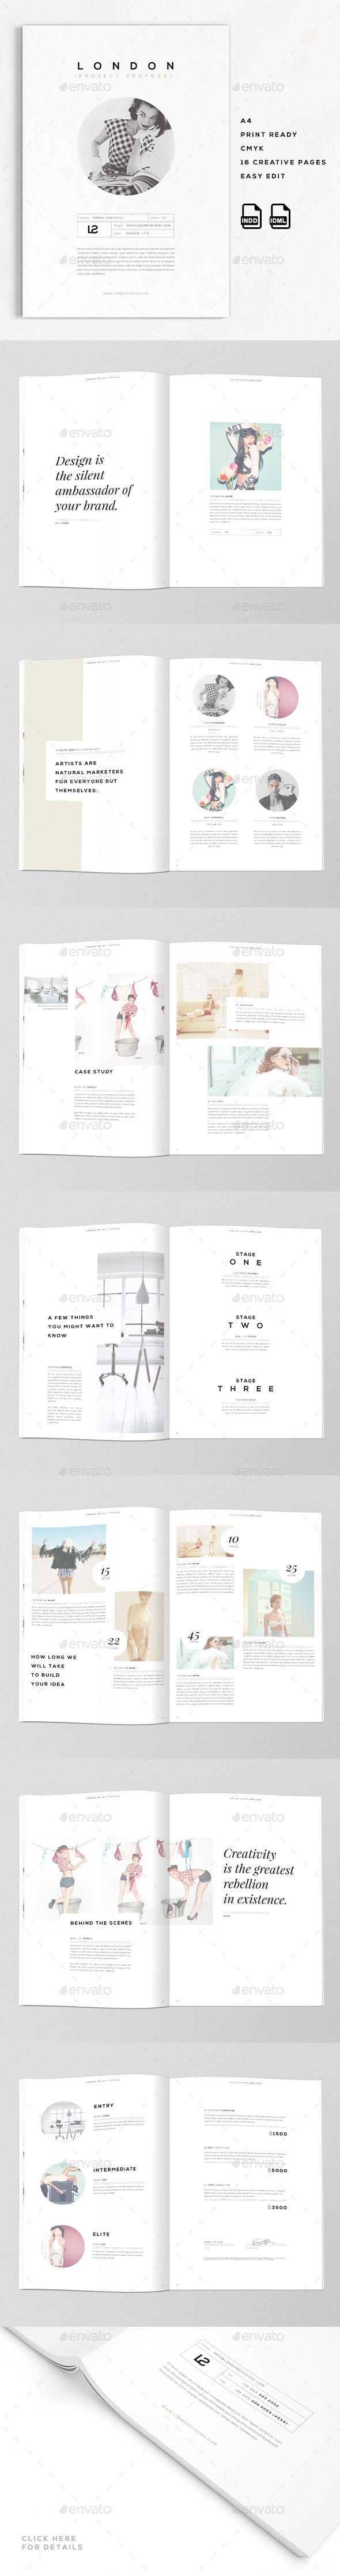 London | A4 Creative Business Proposal  #modern #plans #prices • Available here → http://graphicriver.net/item/london-a4-creative-business-proposal-/15571198?ref=pxcr